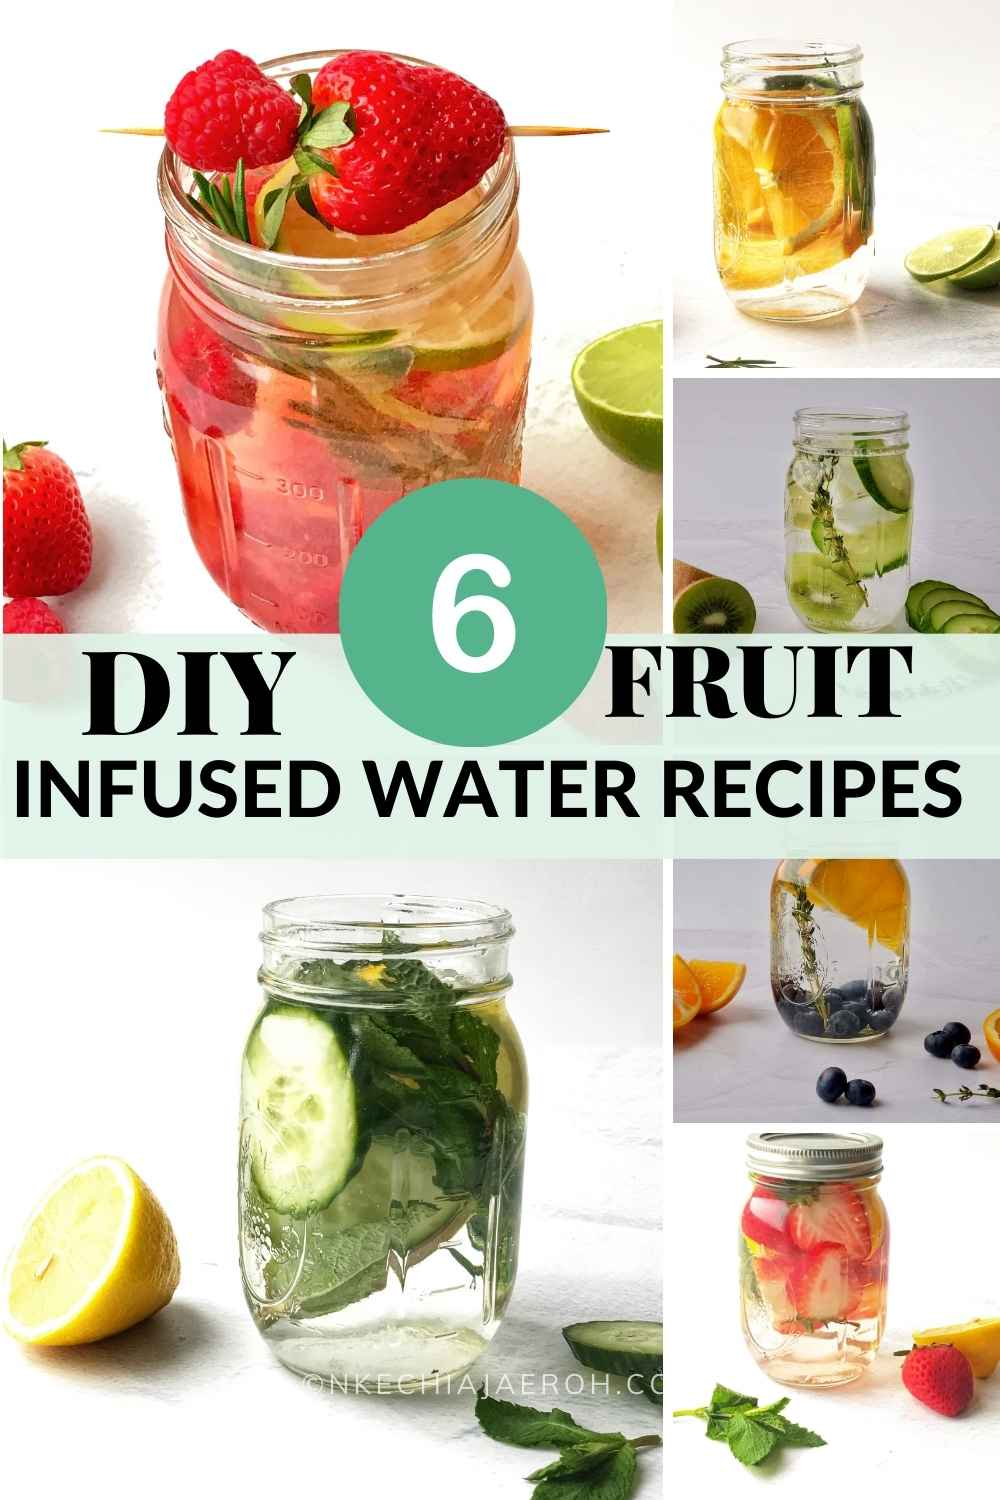 Best Infused water recipes for glowing skin Drink more water with DIY naturally flavored water, aka homemade fruit water! These fruit infused water recipes for glowing skin are health-improving, refreshing, and will surely keep you hydrated. Fruit-flavored water comes in handy during warm weather as we naturally tend to drink more water then. With these fruit water recipes, you can confidently keep the summer heat at bay and stay hydrated as you should. #Infusedwater #fruitwater #vitaminwater #DIYfruitinfusedwater #detoxwater